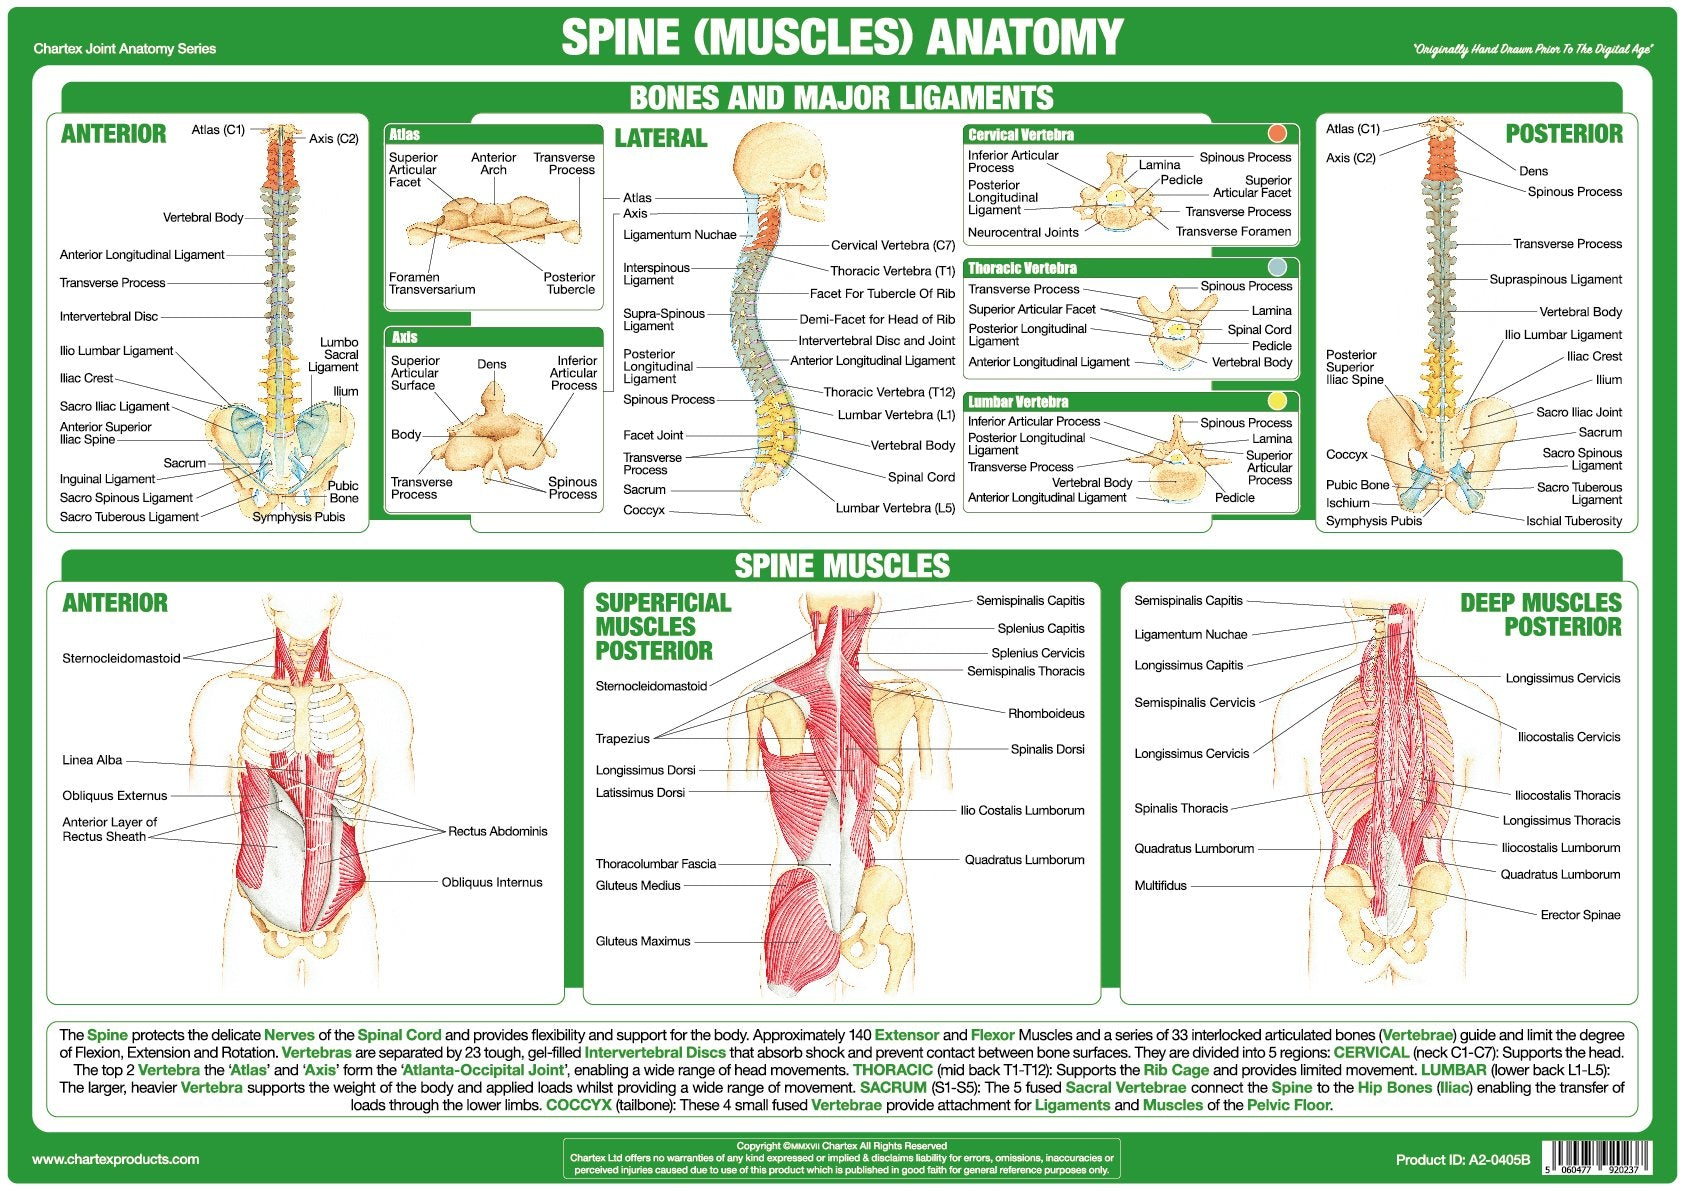 Spine Muscles Anatomy Chart - Chartex Ltd